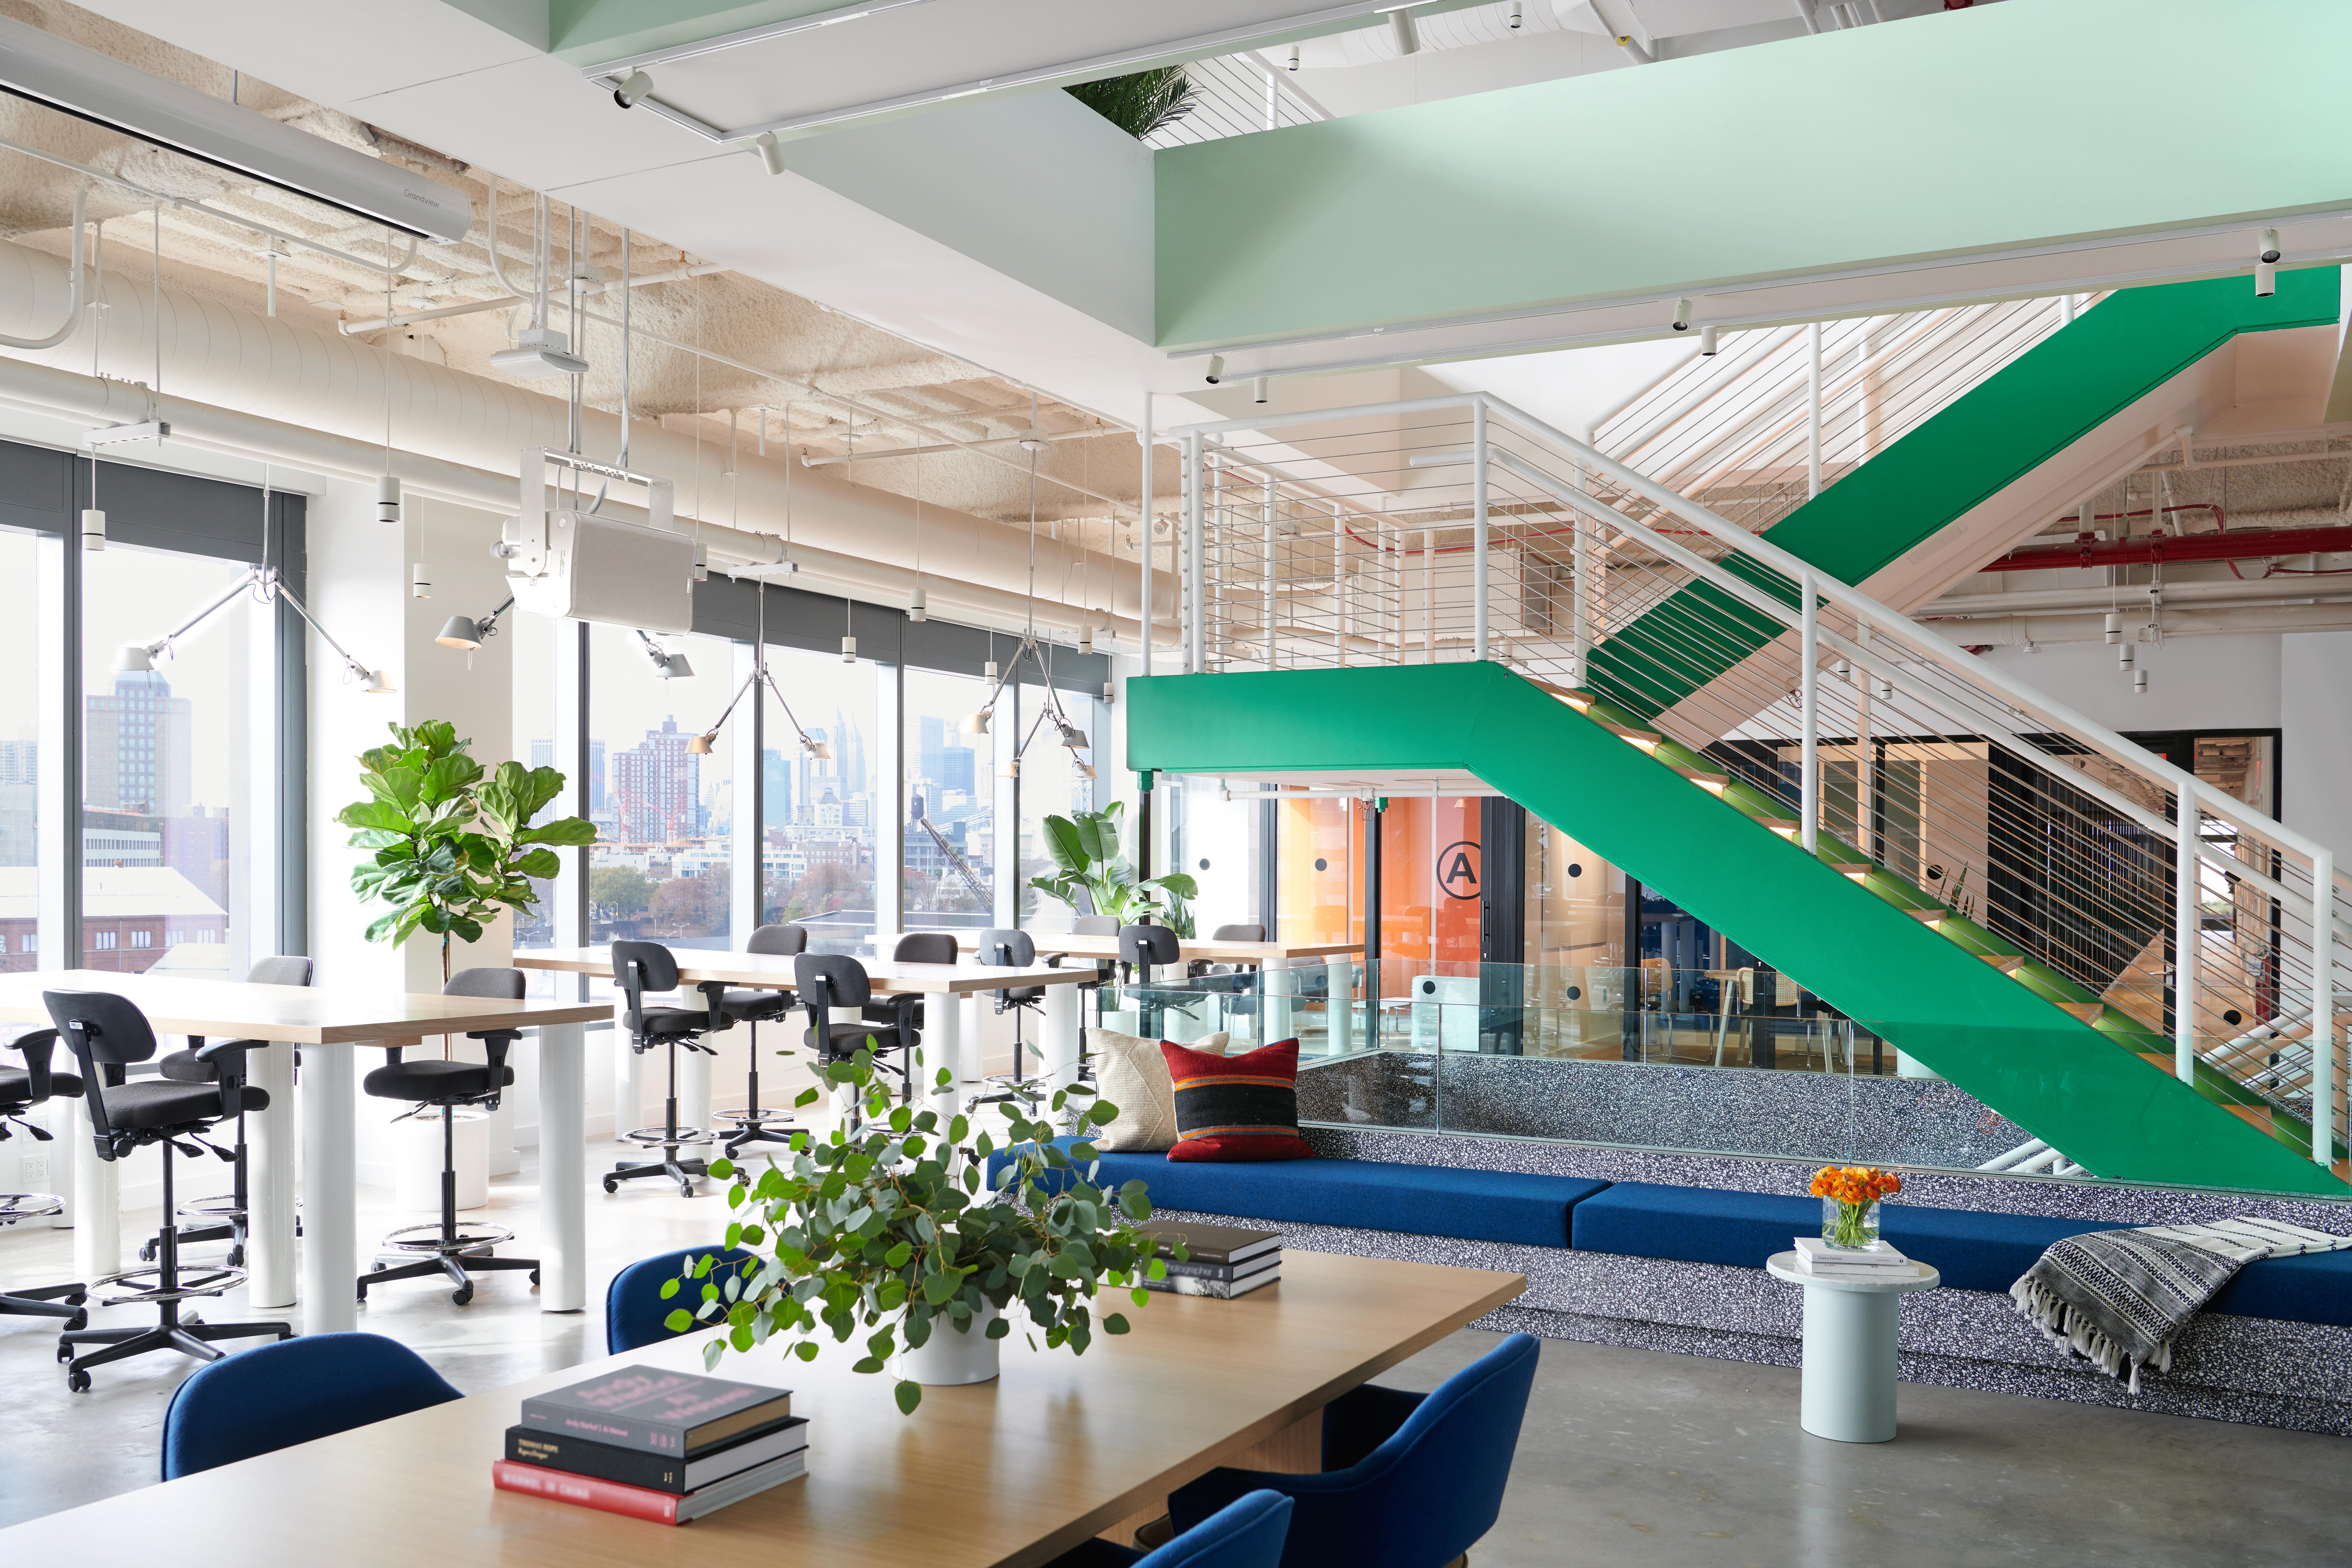 Common areas at WeWork blend work and leisure zones to provide diverse workspaces